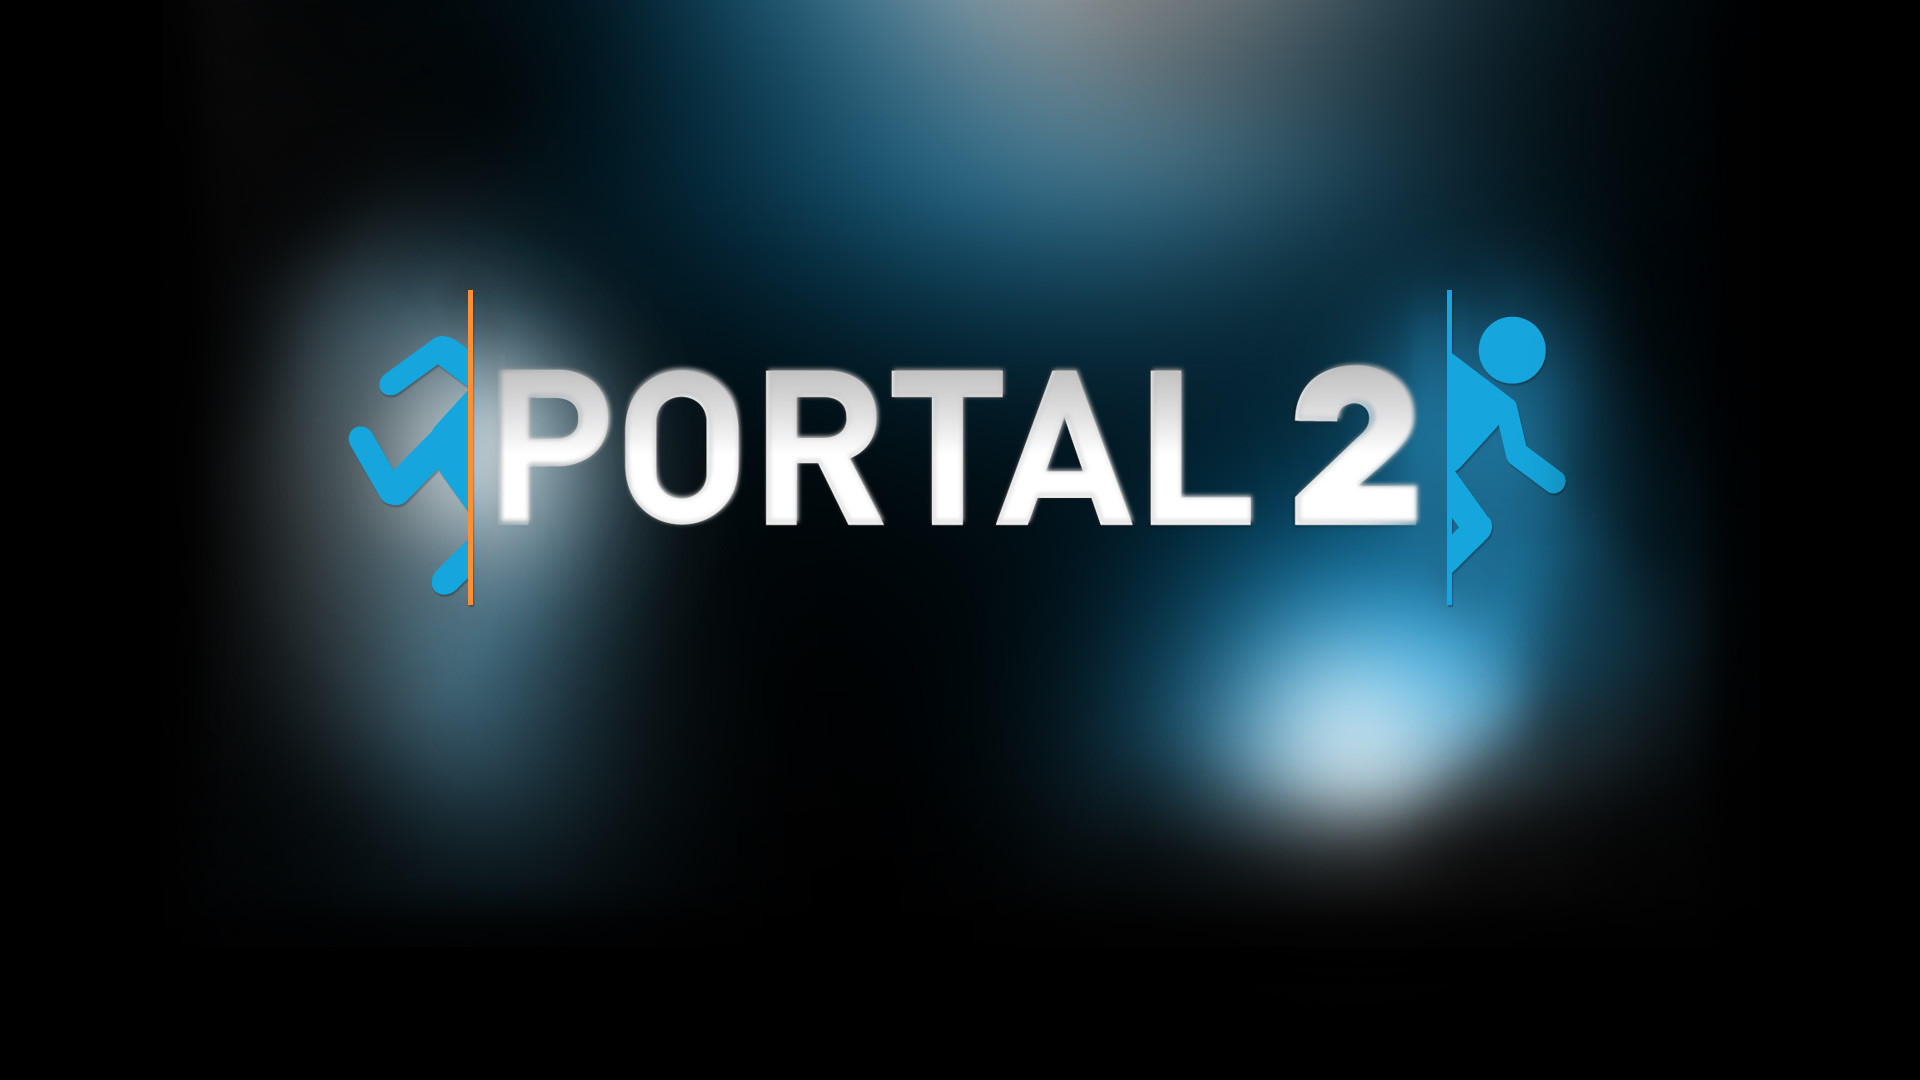 Portal 2 Profile Background. View Full Size